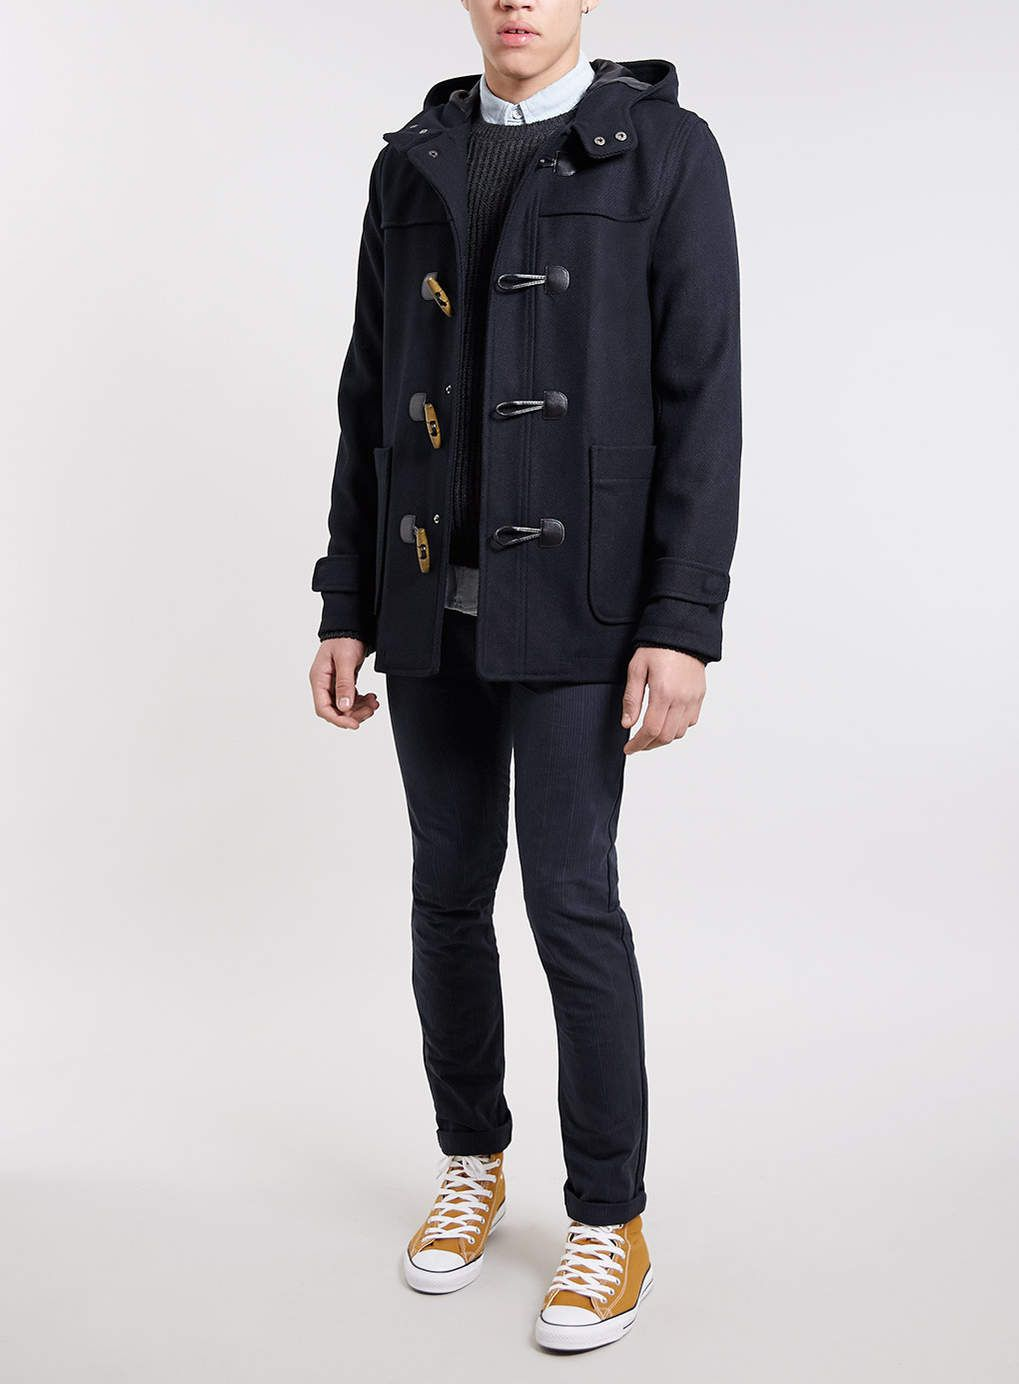 Navy wool blend duffle coat | Coats, Products and Wool